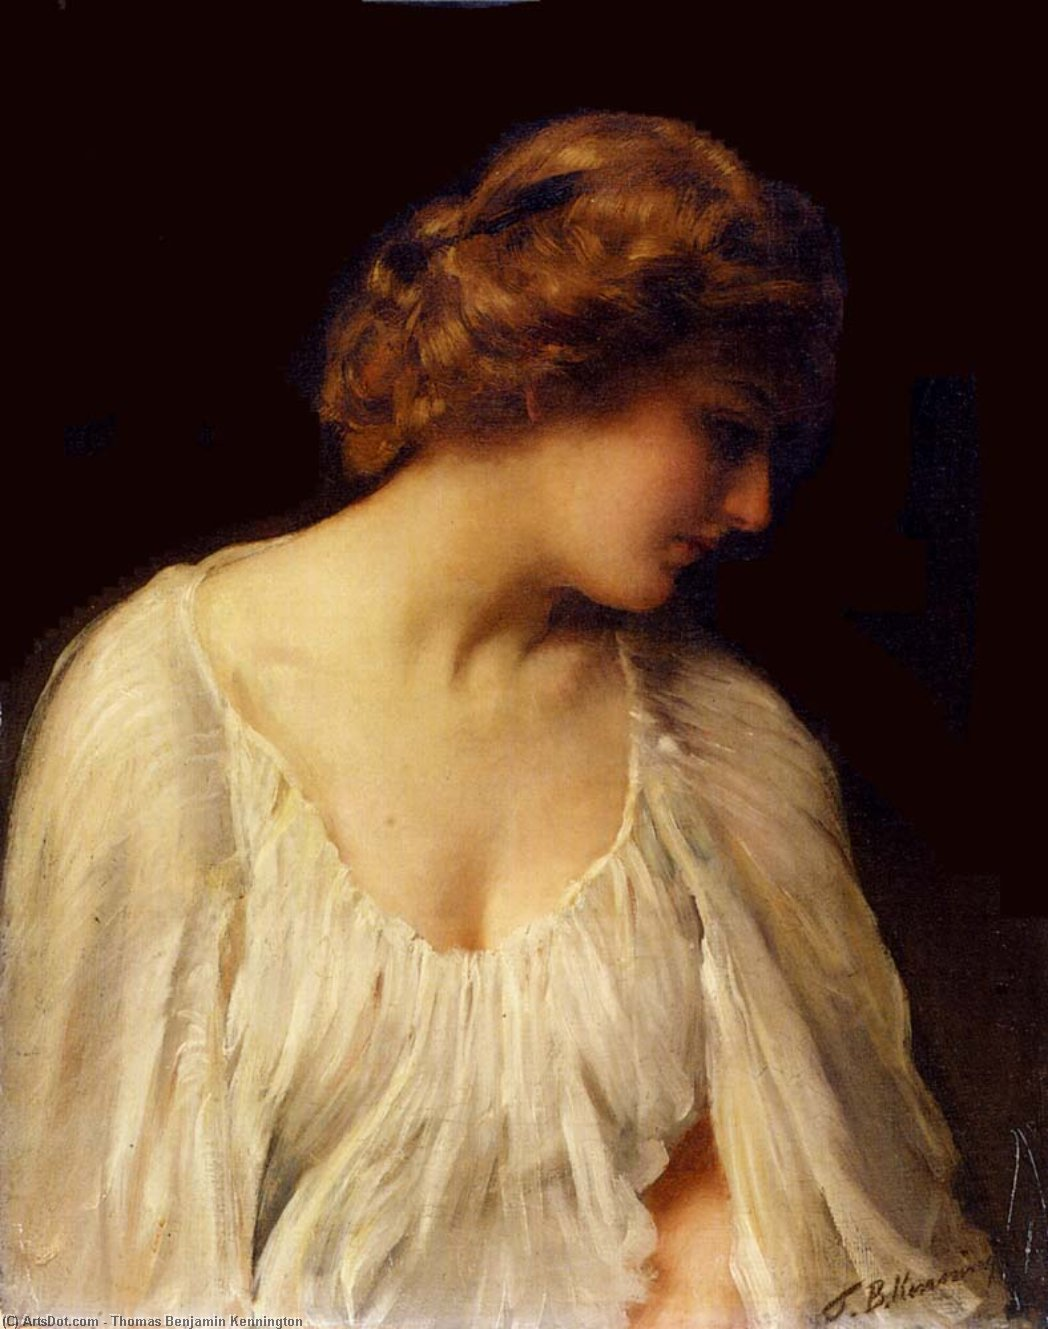 沉思 通过 Thomas Benjamin Kennington (1856-1916, United Kingdom)